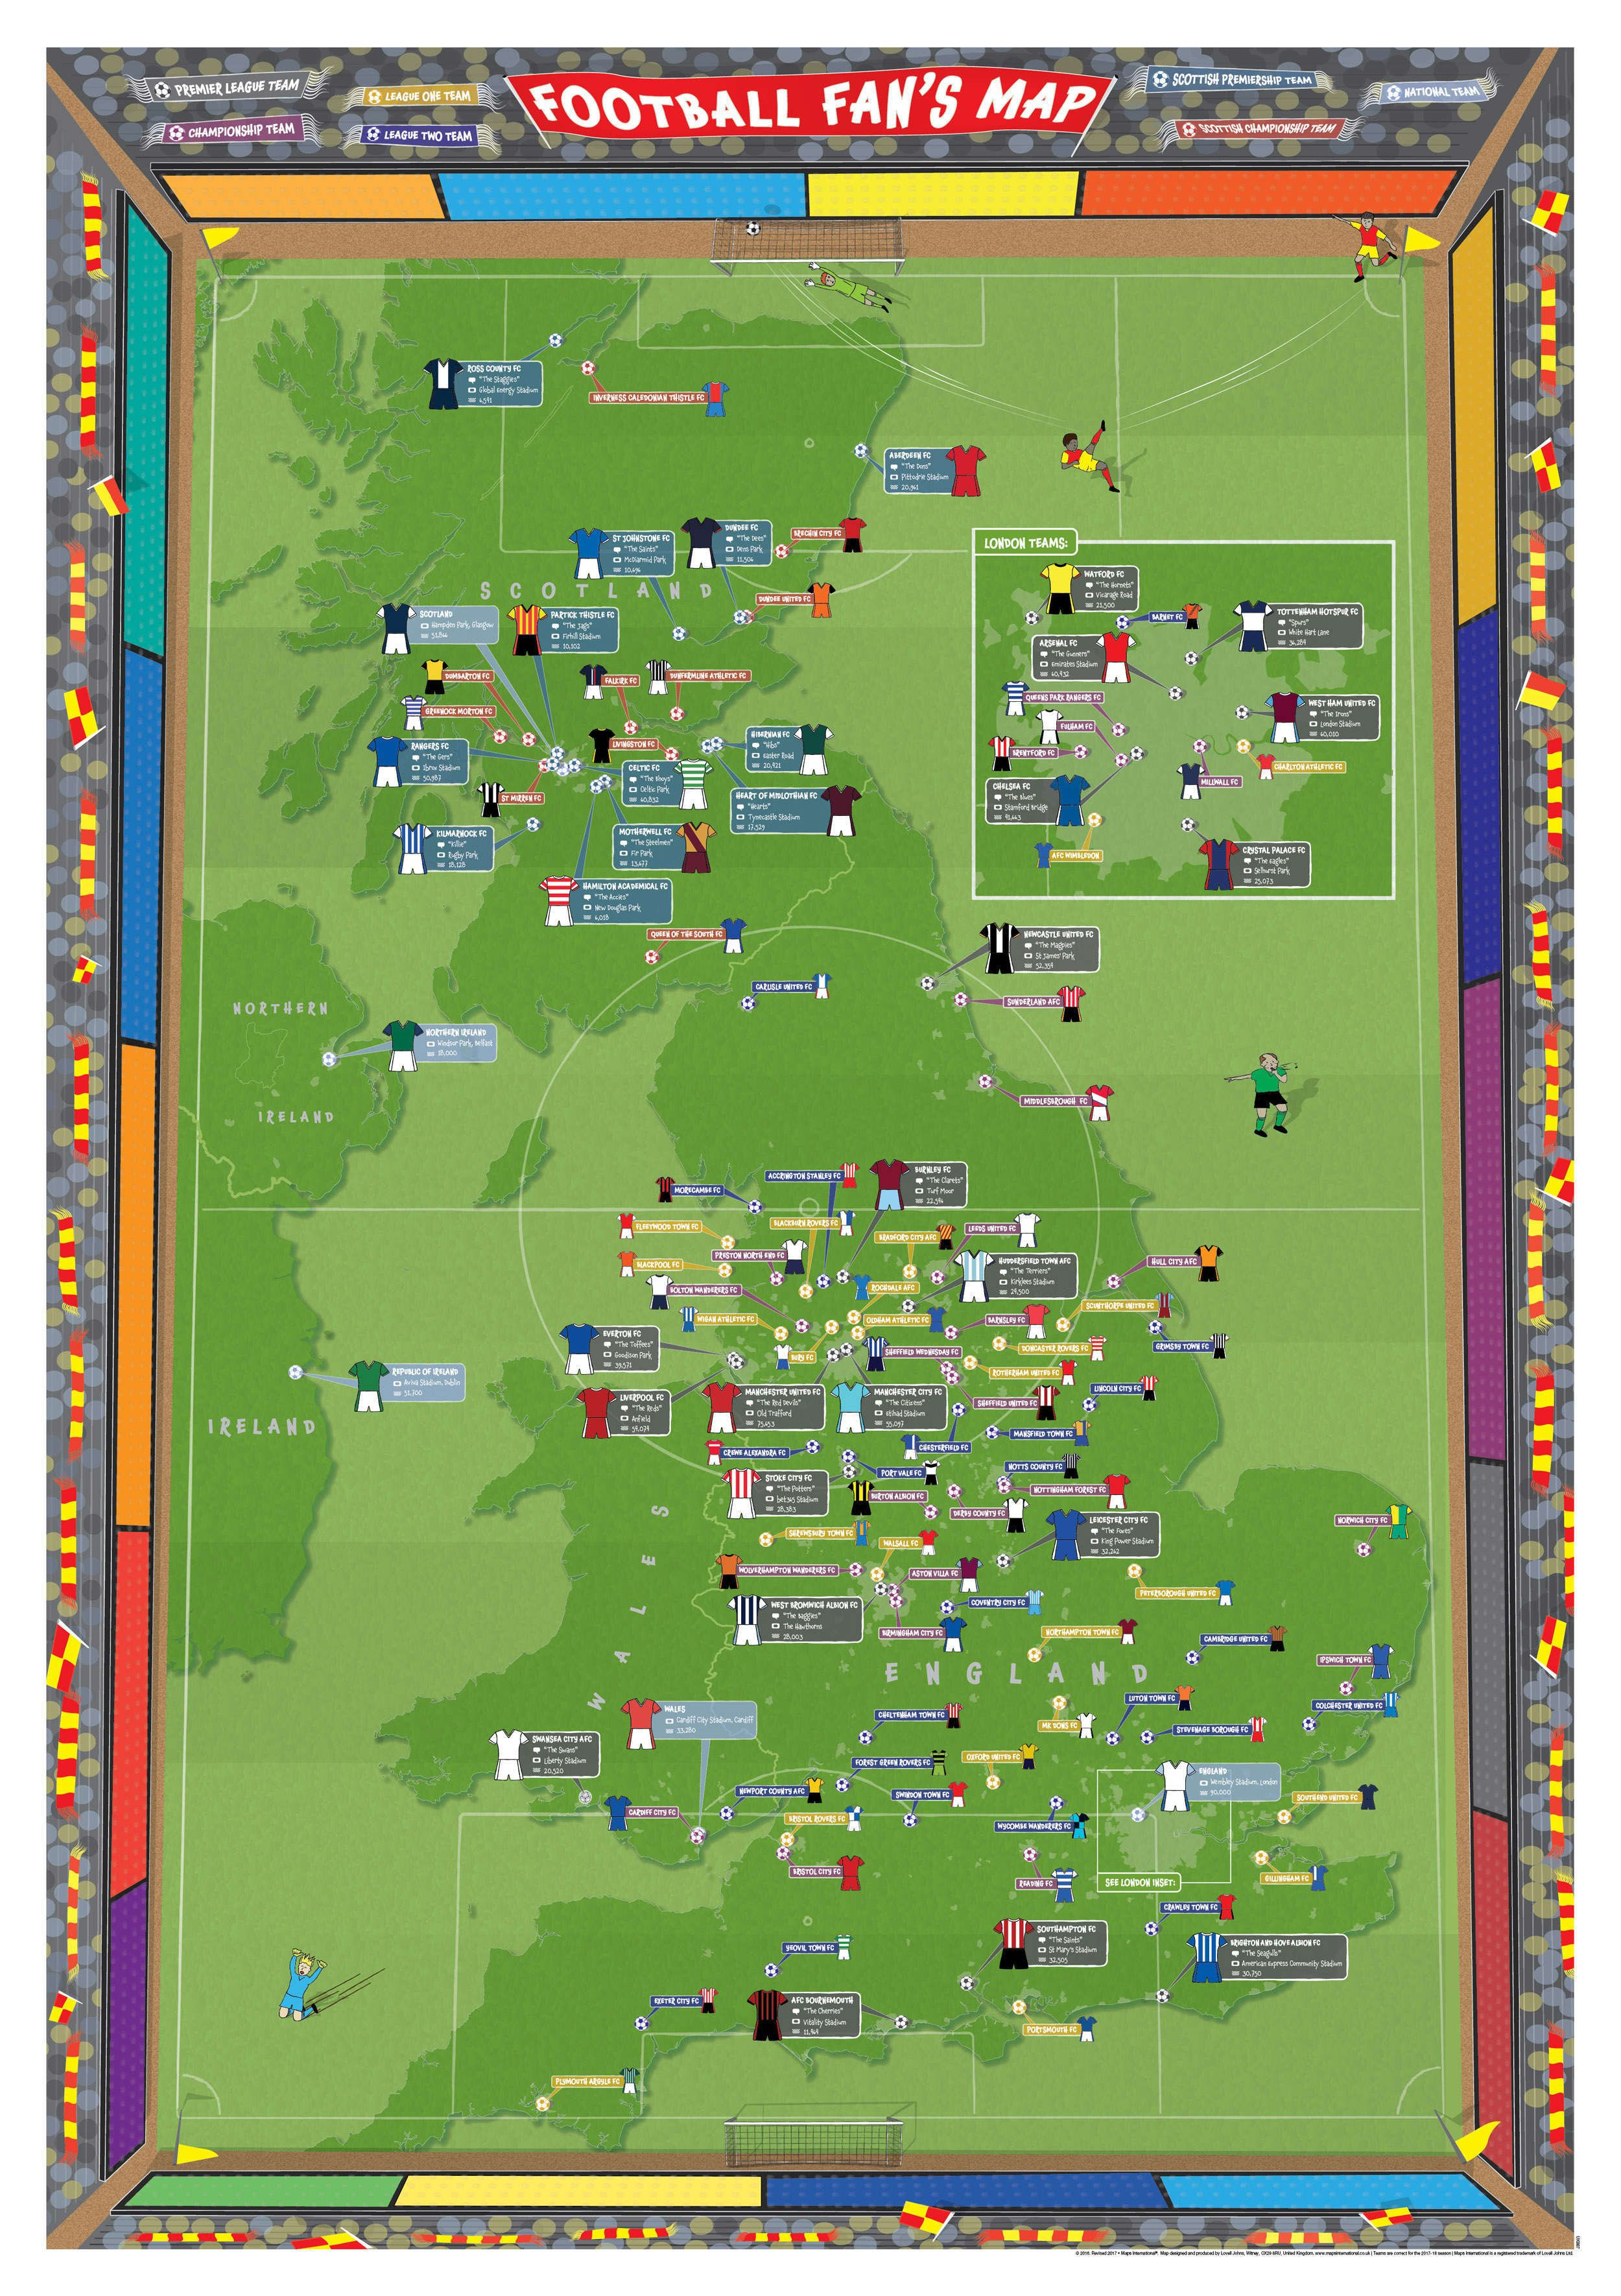 Football Fans Stadium Map - Scratch off us state maps with pencil 25 pack